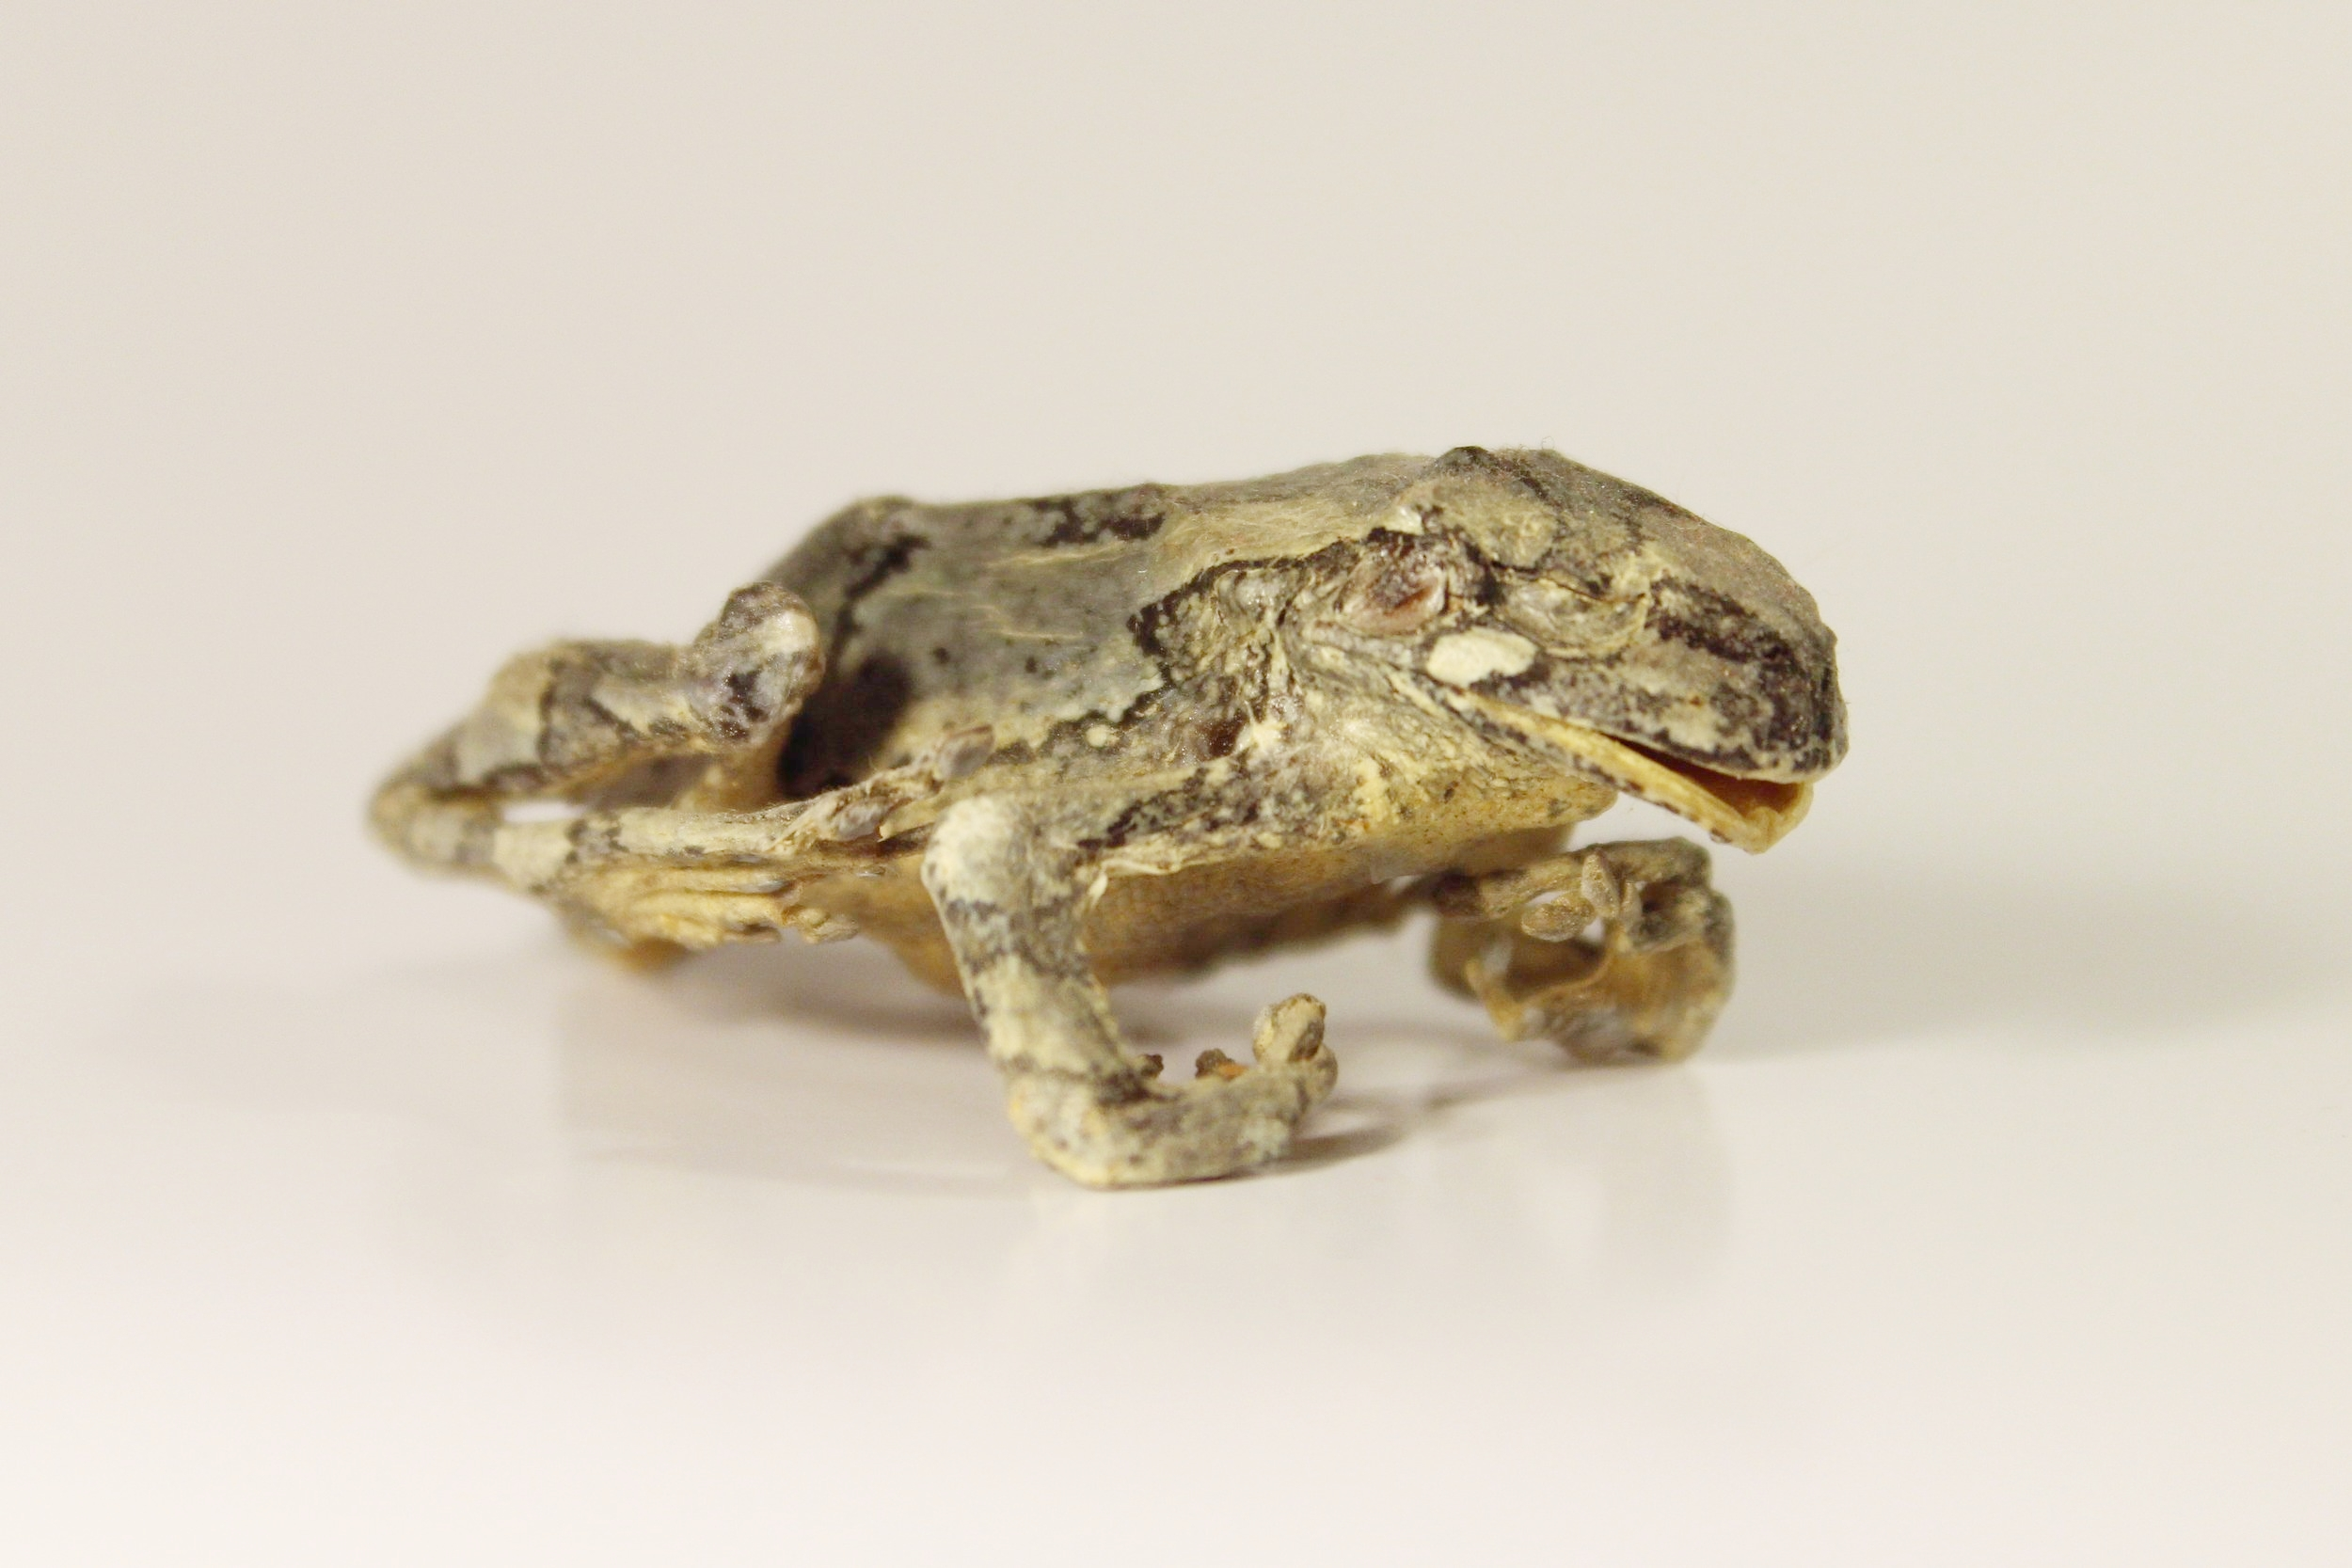 Mummified Gray Tree Frog